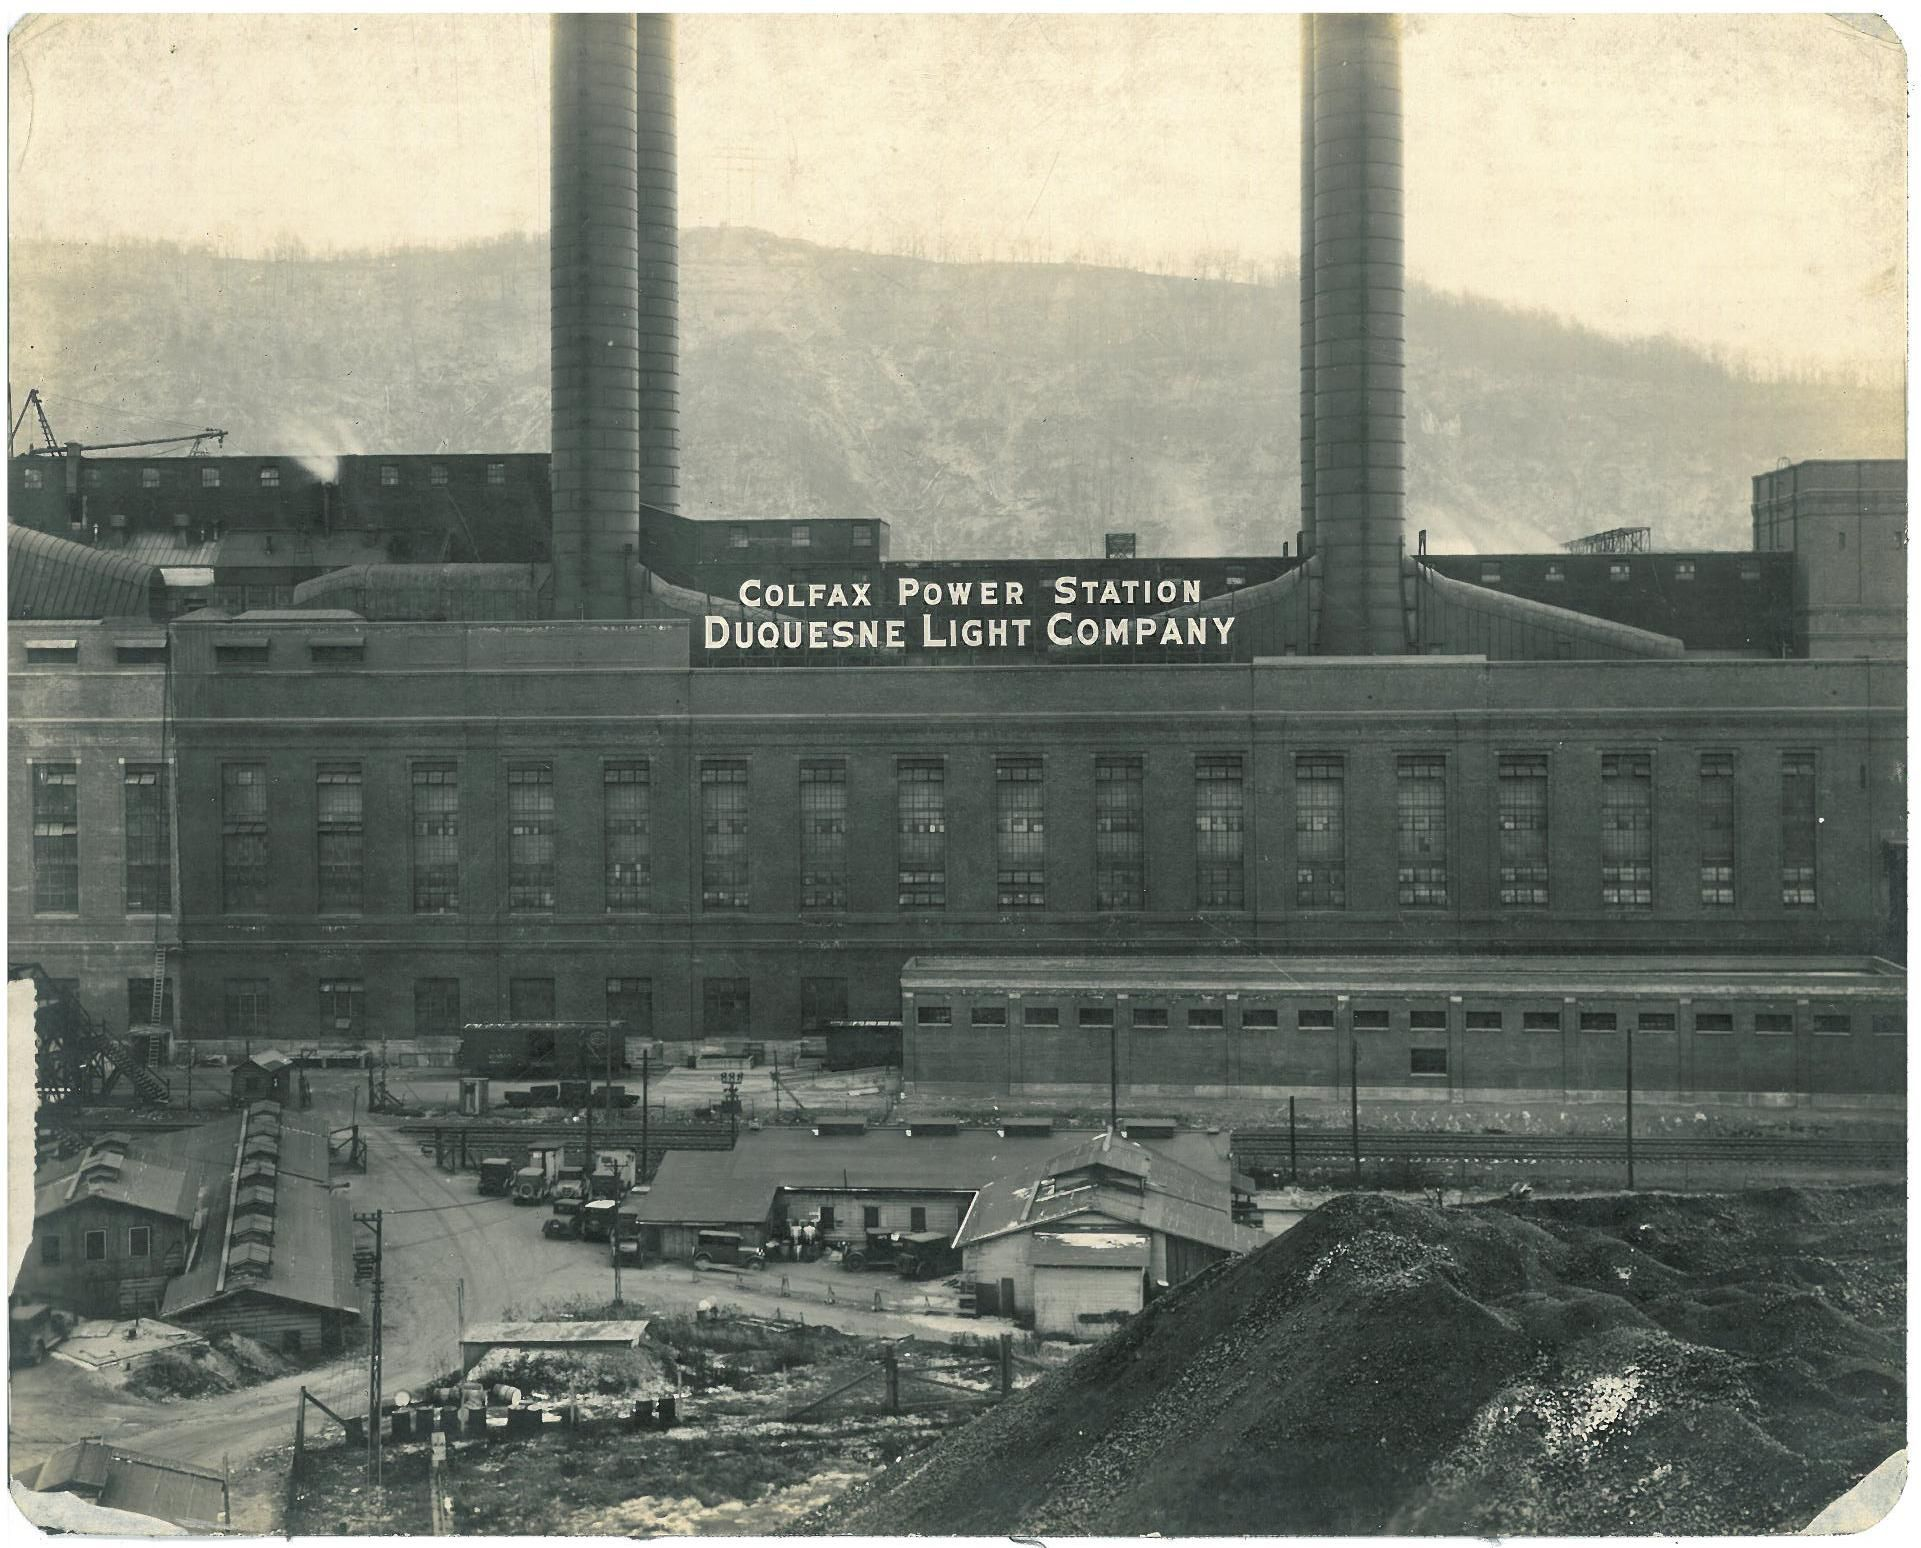 Colfax Power Station